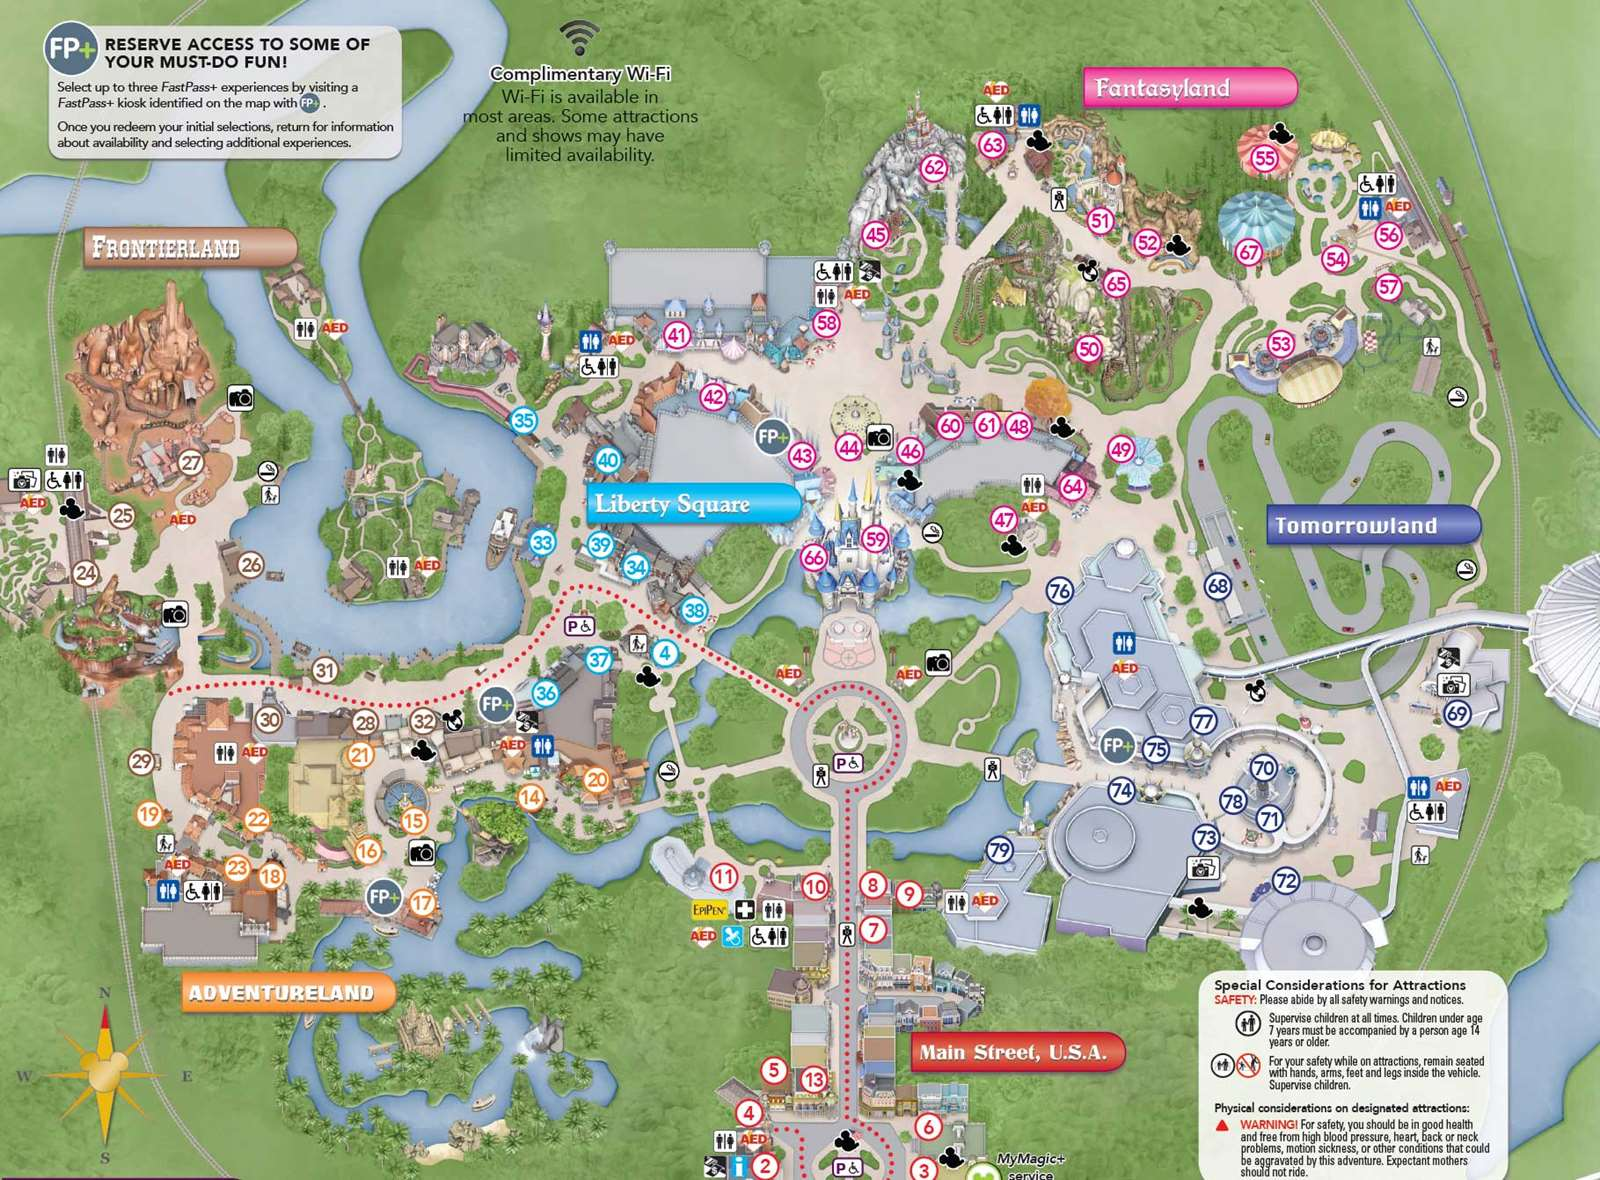 photos new magic kingdom guide map shows changes to the hub area